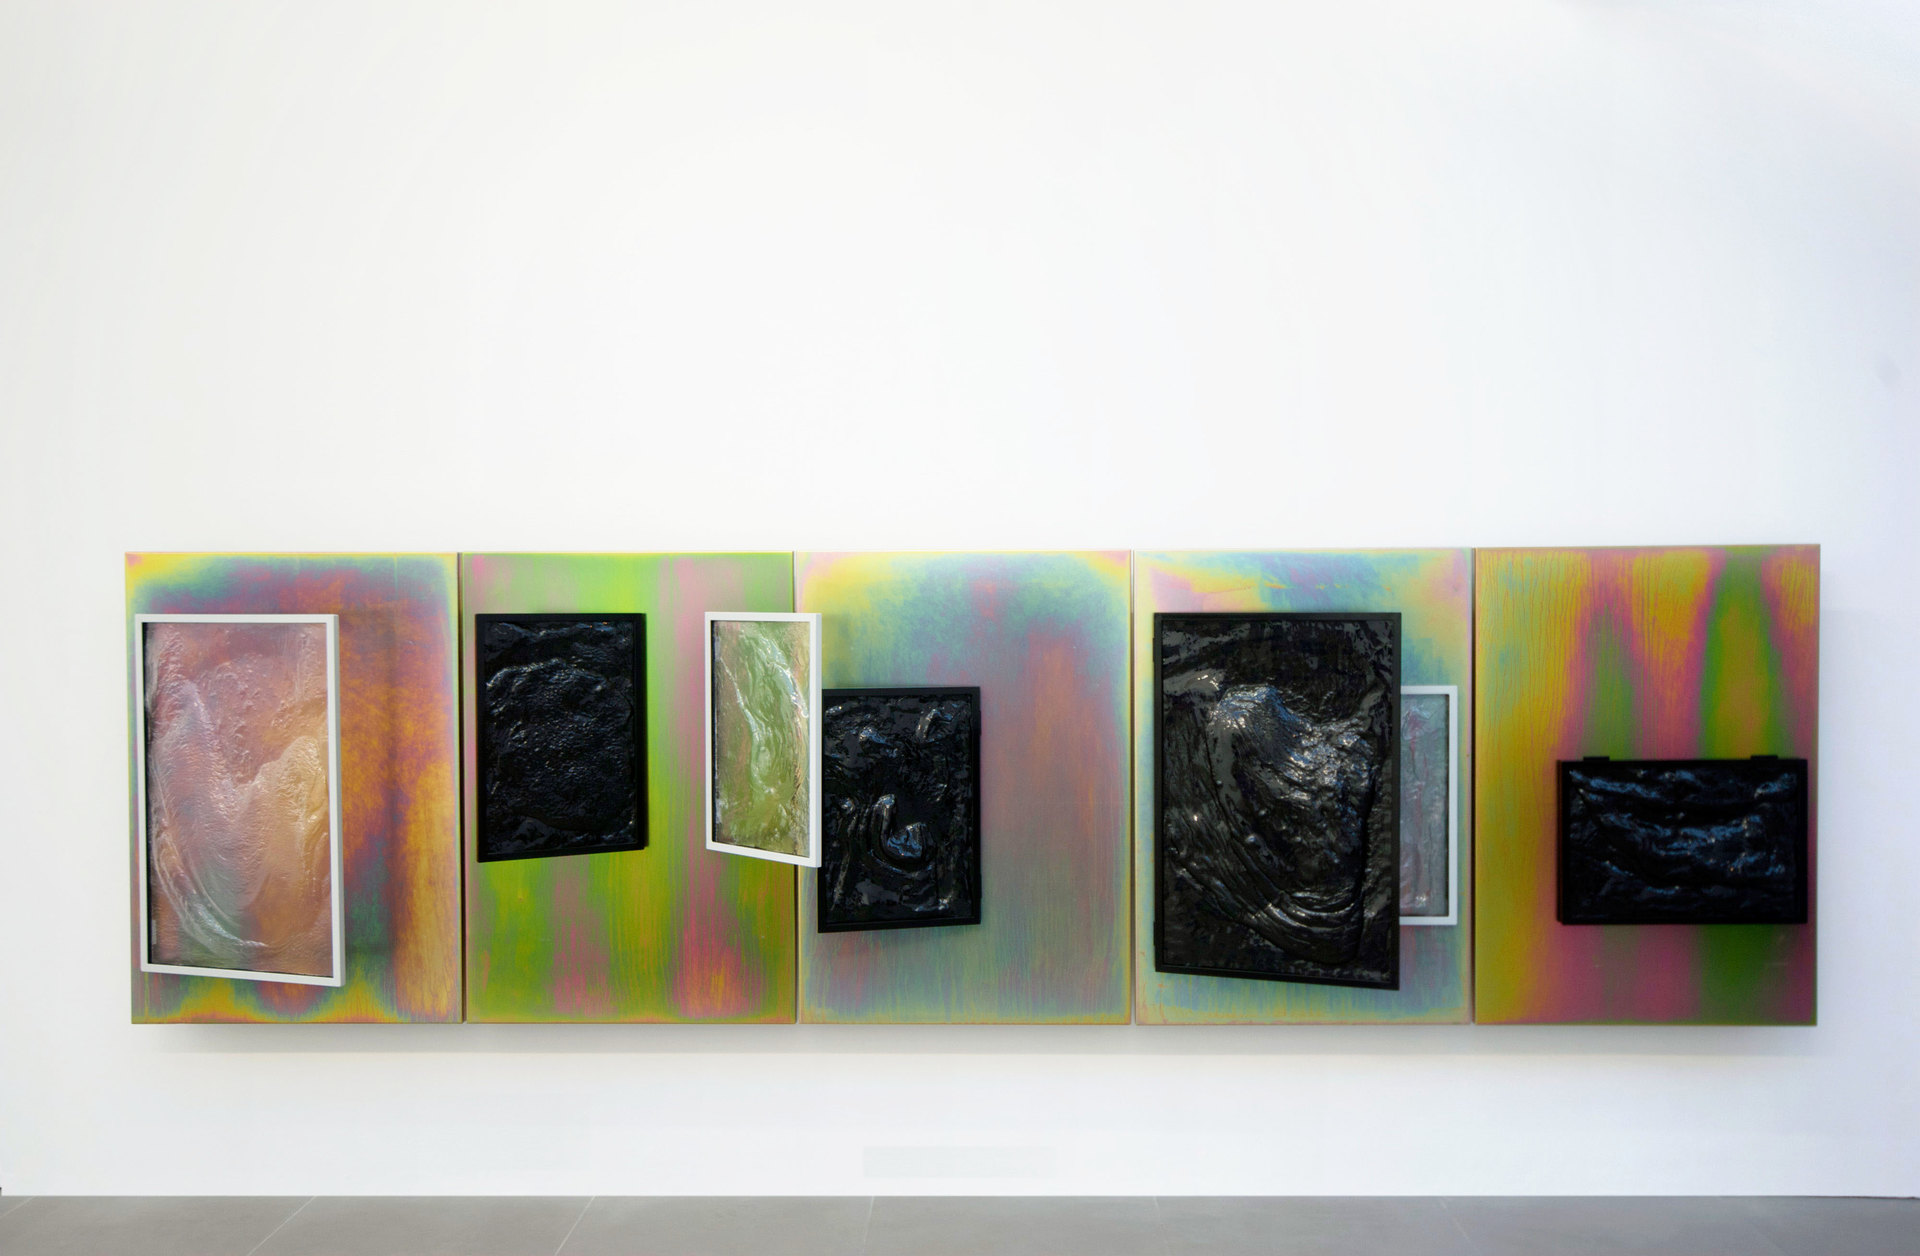 Nicolas Deshayes, Salts, 2012, 5 panels 100 x 70 cm each, steel panels, vacuum formed plastic in aluminum frames, Cell Project Space